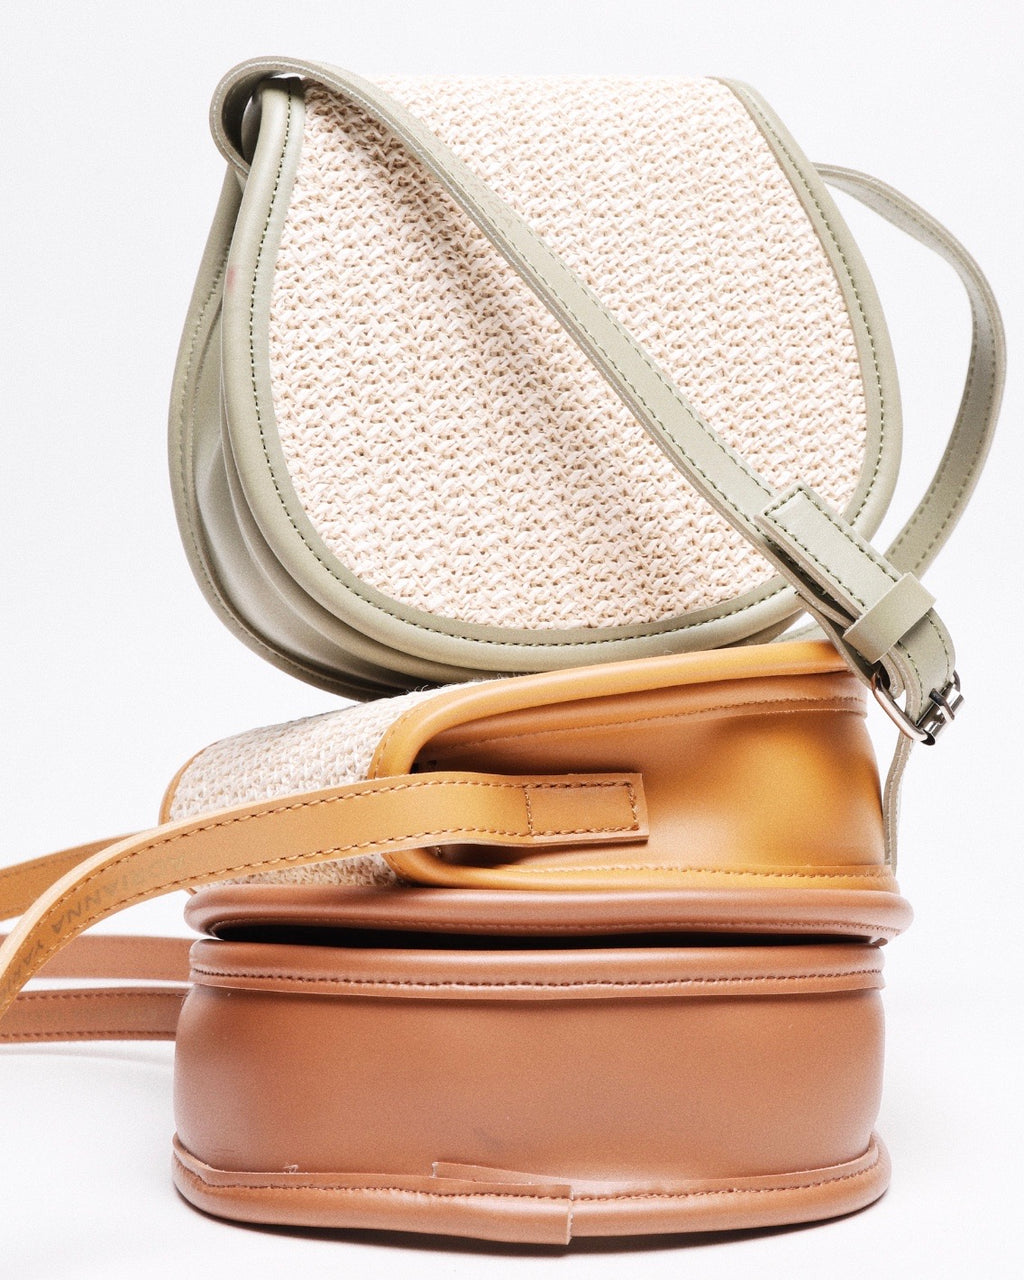 #AYBAG Clò Crossbody Bag